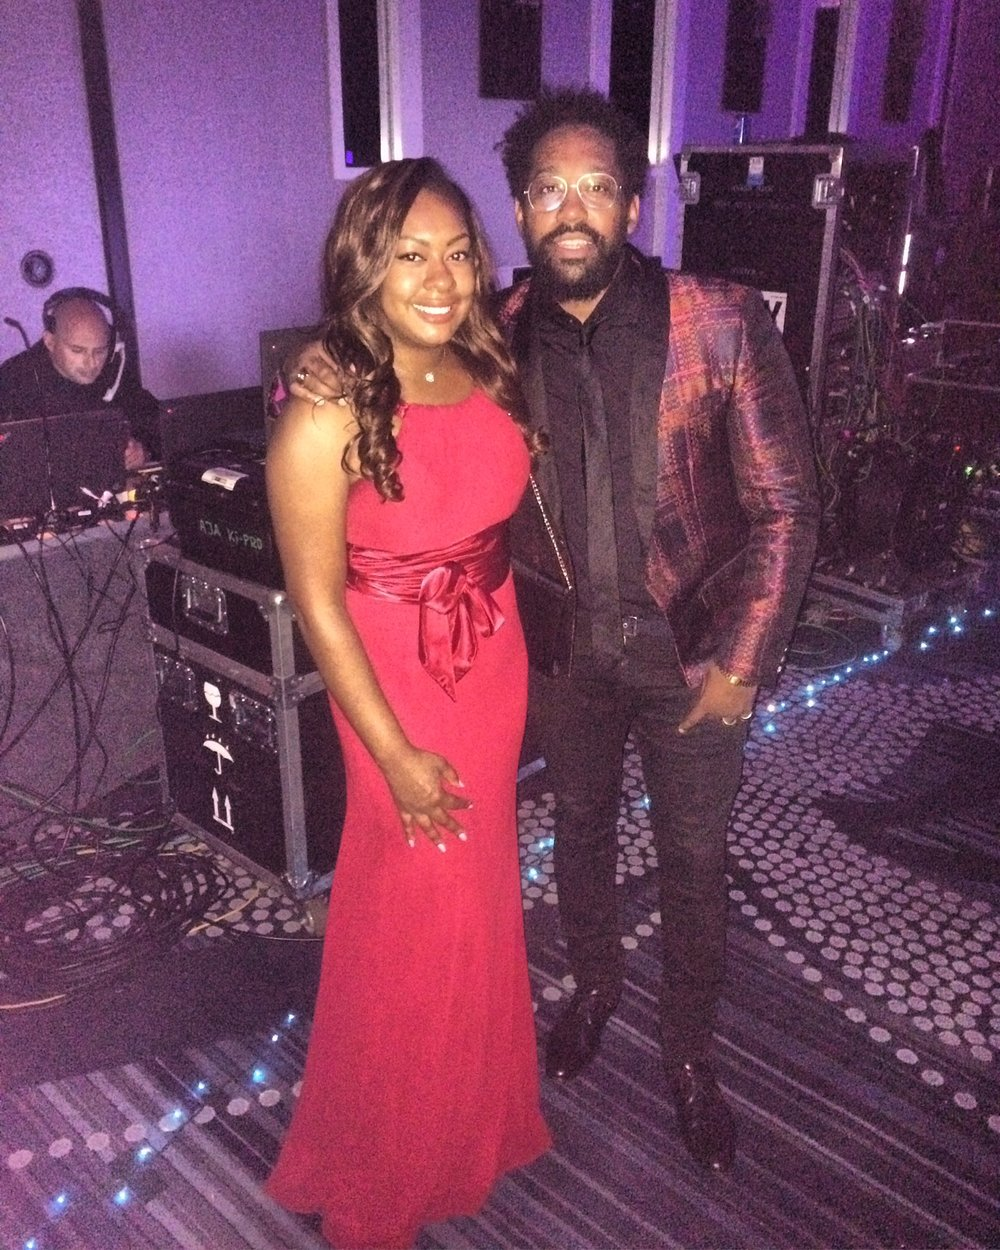 PJ Morton (Singer, Producer, Pianist for Maroon 5) & I backstage at UNCF's Mayor's Ball